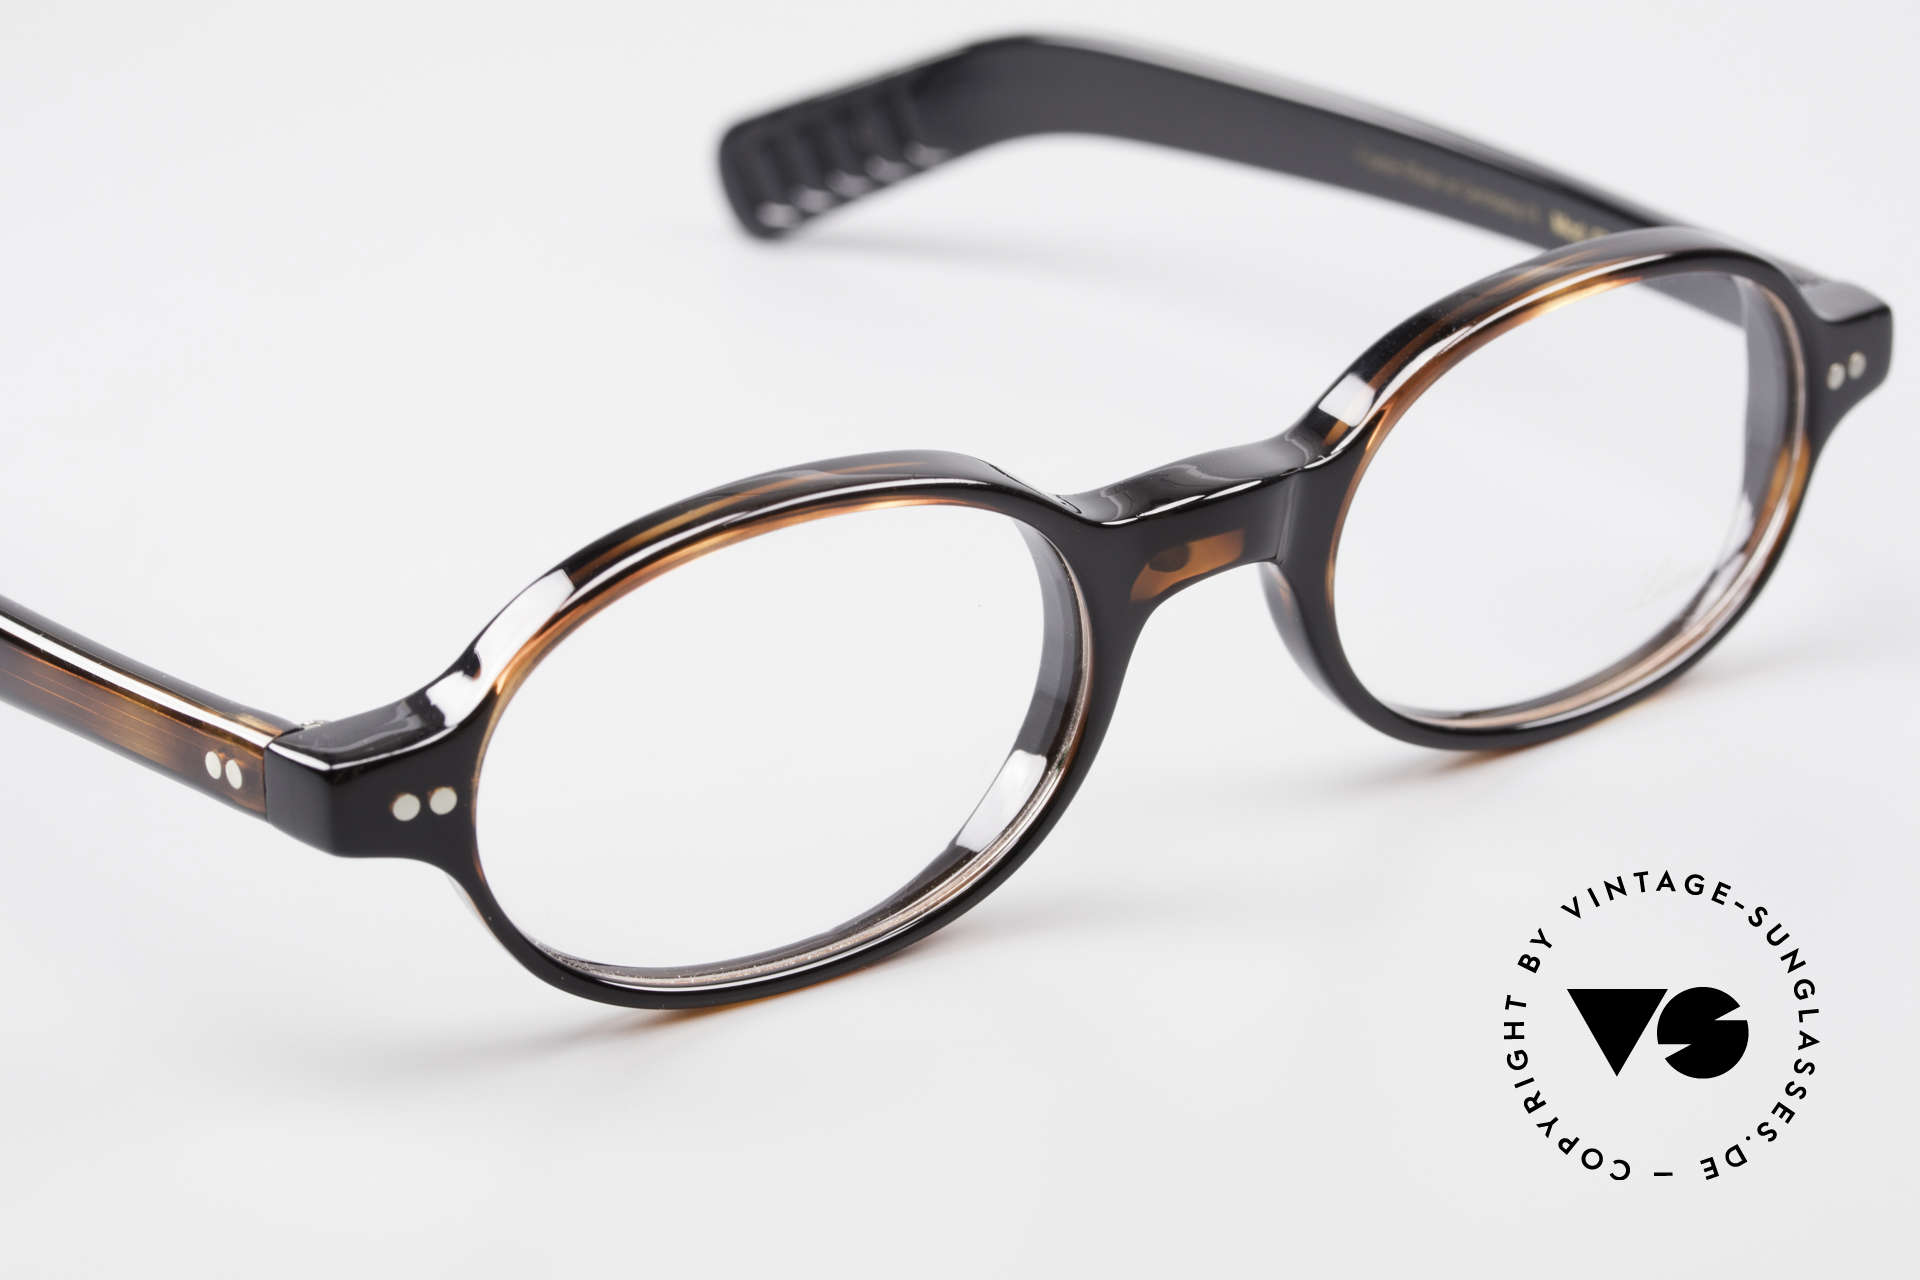 Lunor A57 Oval Lunor Acetate Glasses, unworn (like all our beautiful Lunor frames & sunglasses), Made for Men and Women